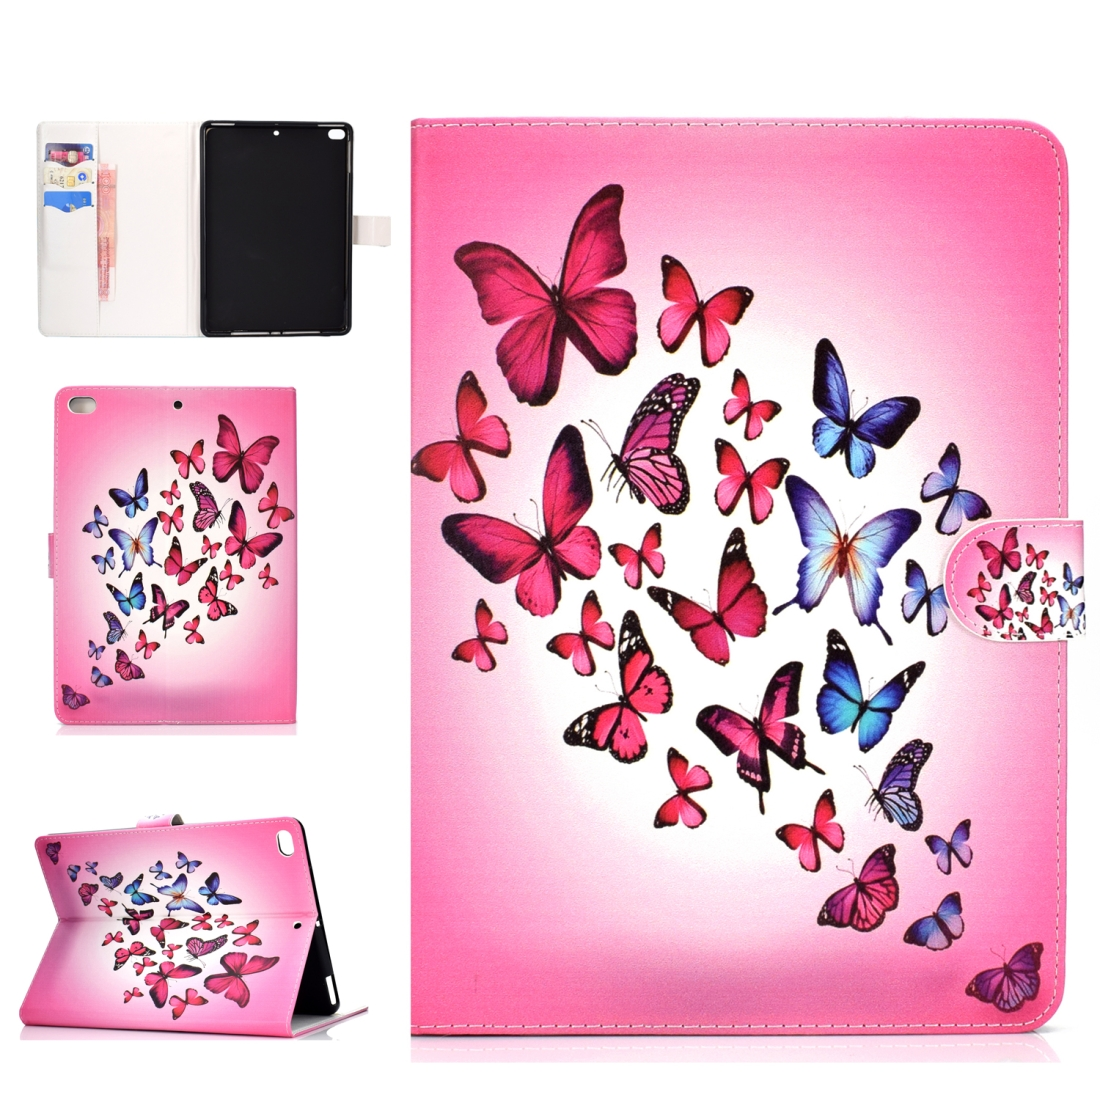 iPad 5th Generation Case Fits iPad 5,6,8, Stylish Leather Design & Auto Sleep Function (Butterfly)